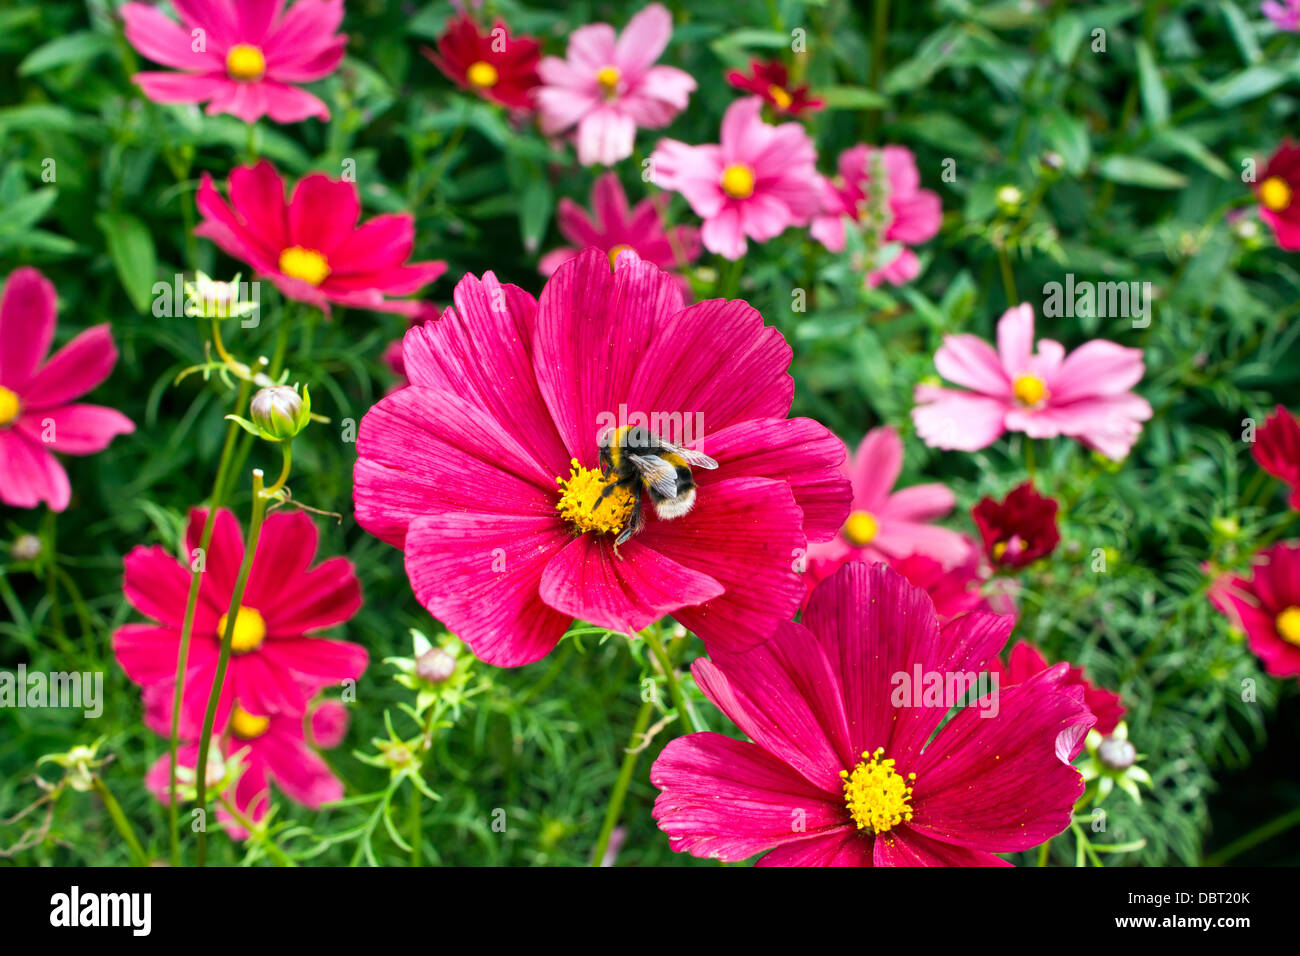 Pink cosmos flowers in a cottage garden. - Stock Image